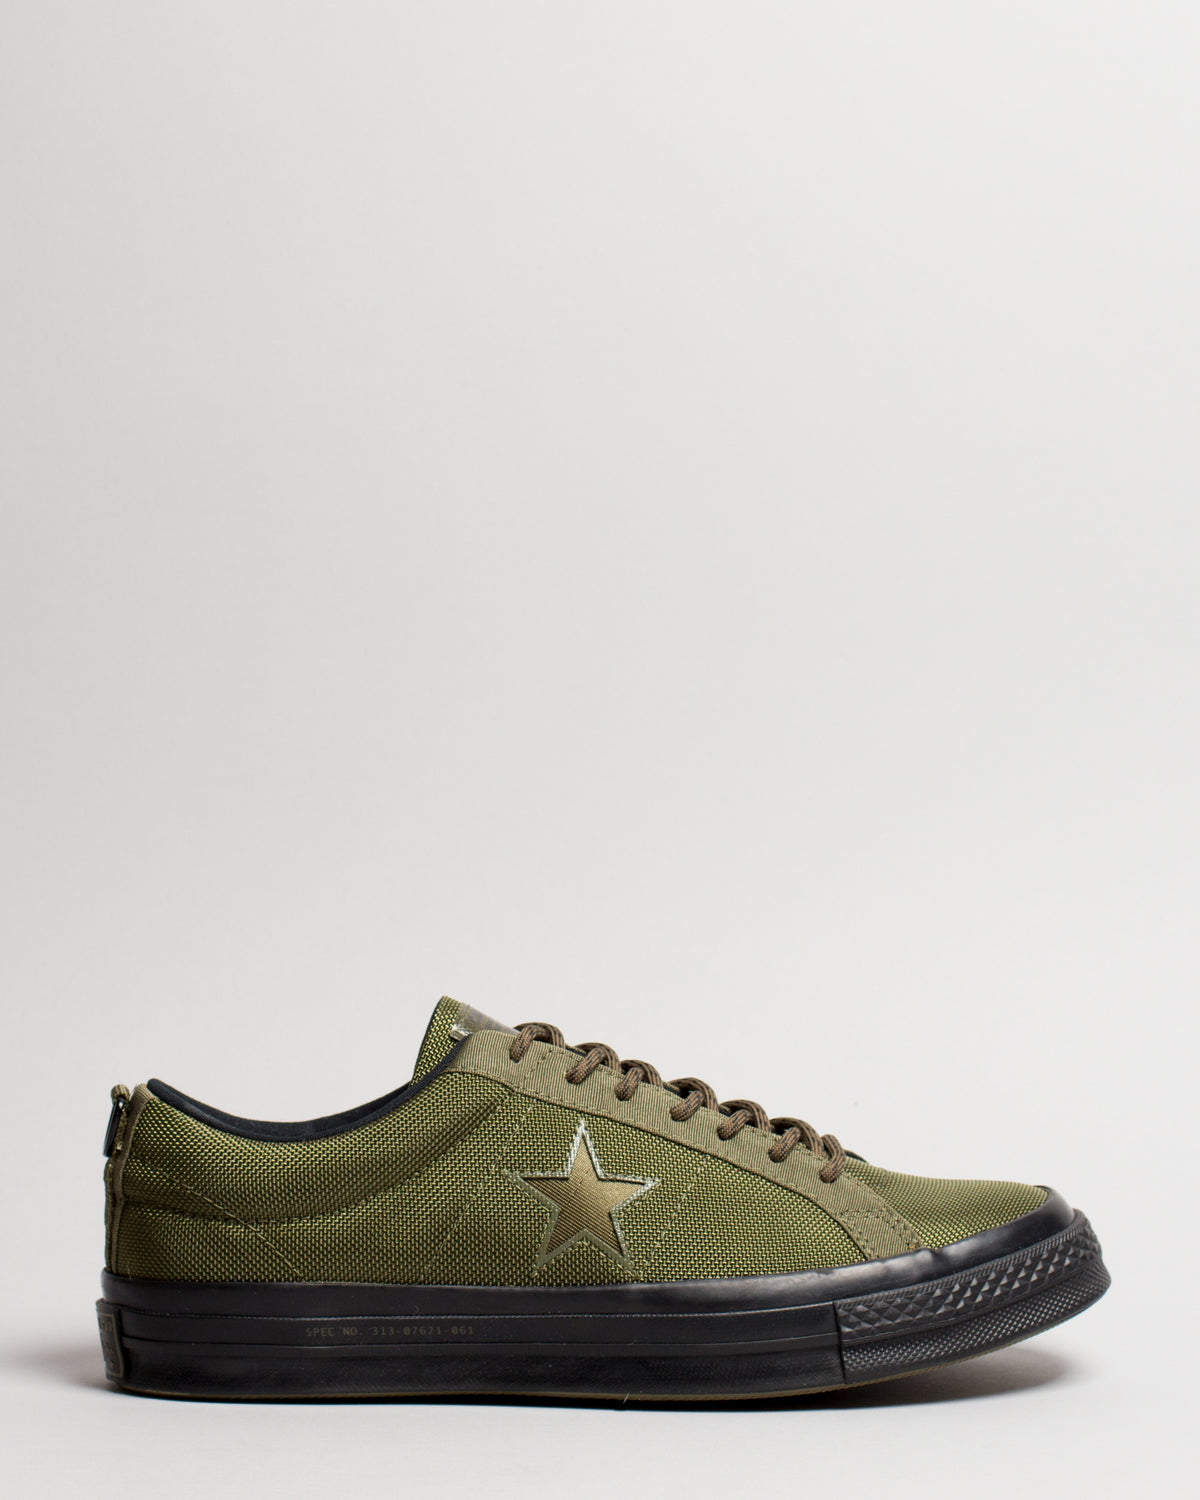 Carhartt WIP One Star Olive